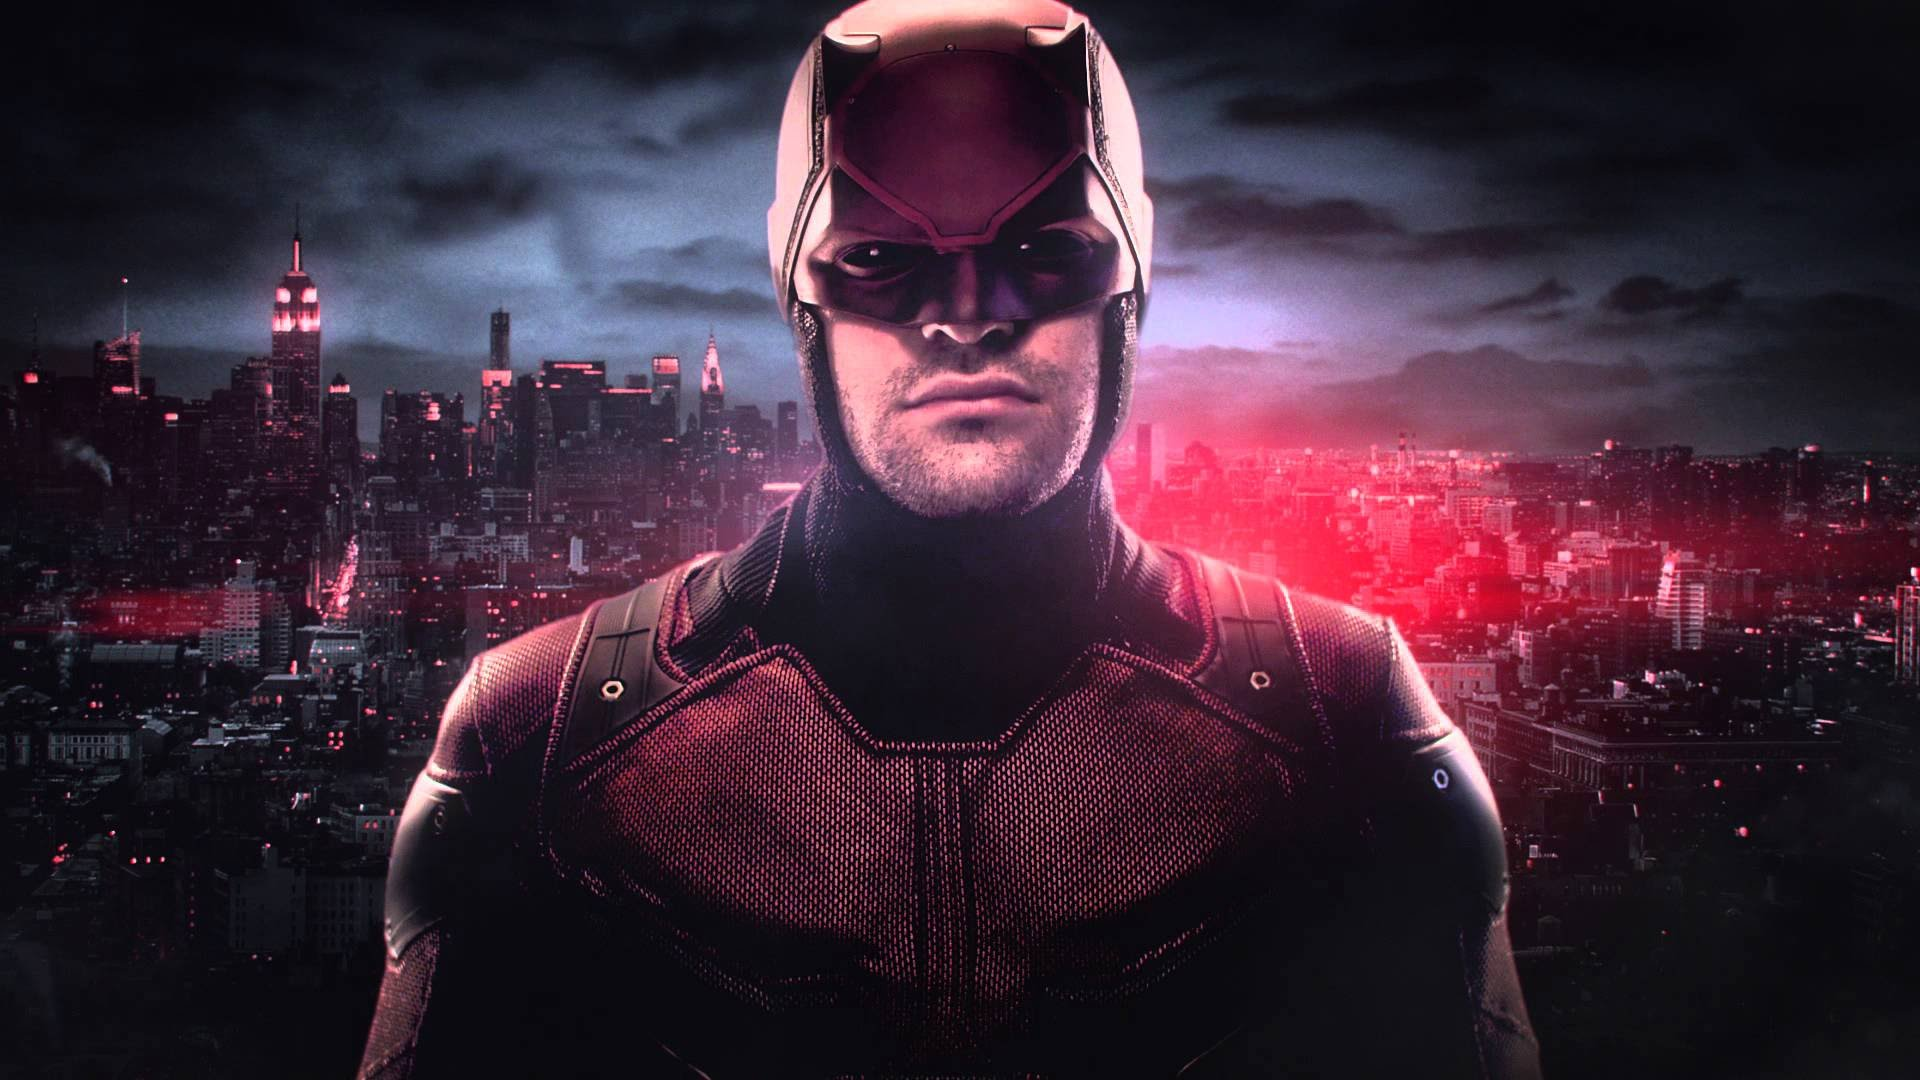 Matt murdock daredevil hd tv shows 4k wallpapers images - Tv series wallpaper 4k ...